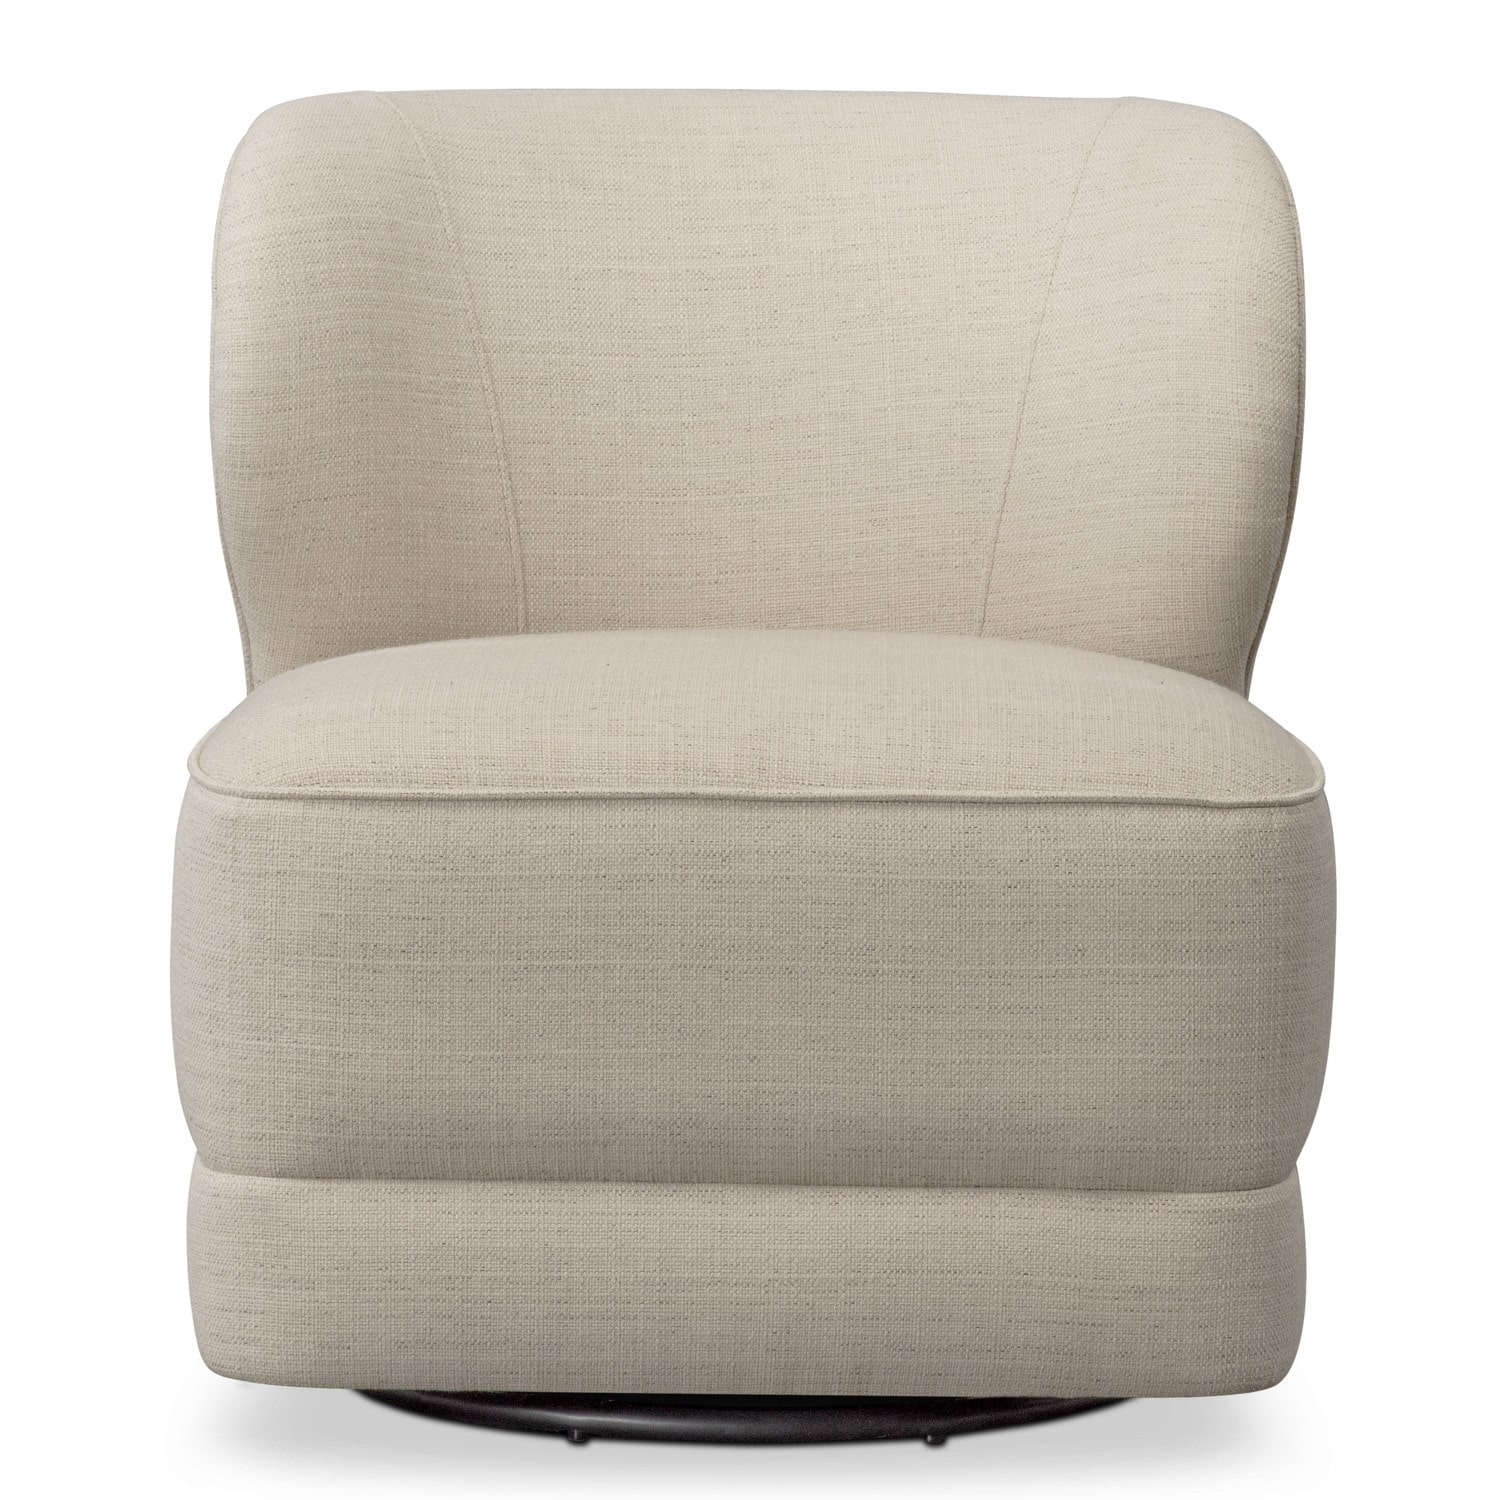 swivel chair value city sure fit dining covers target lounge ivory furniture and